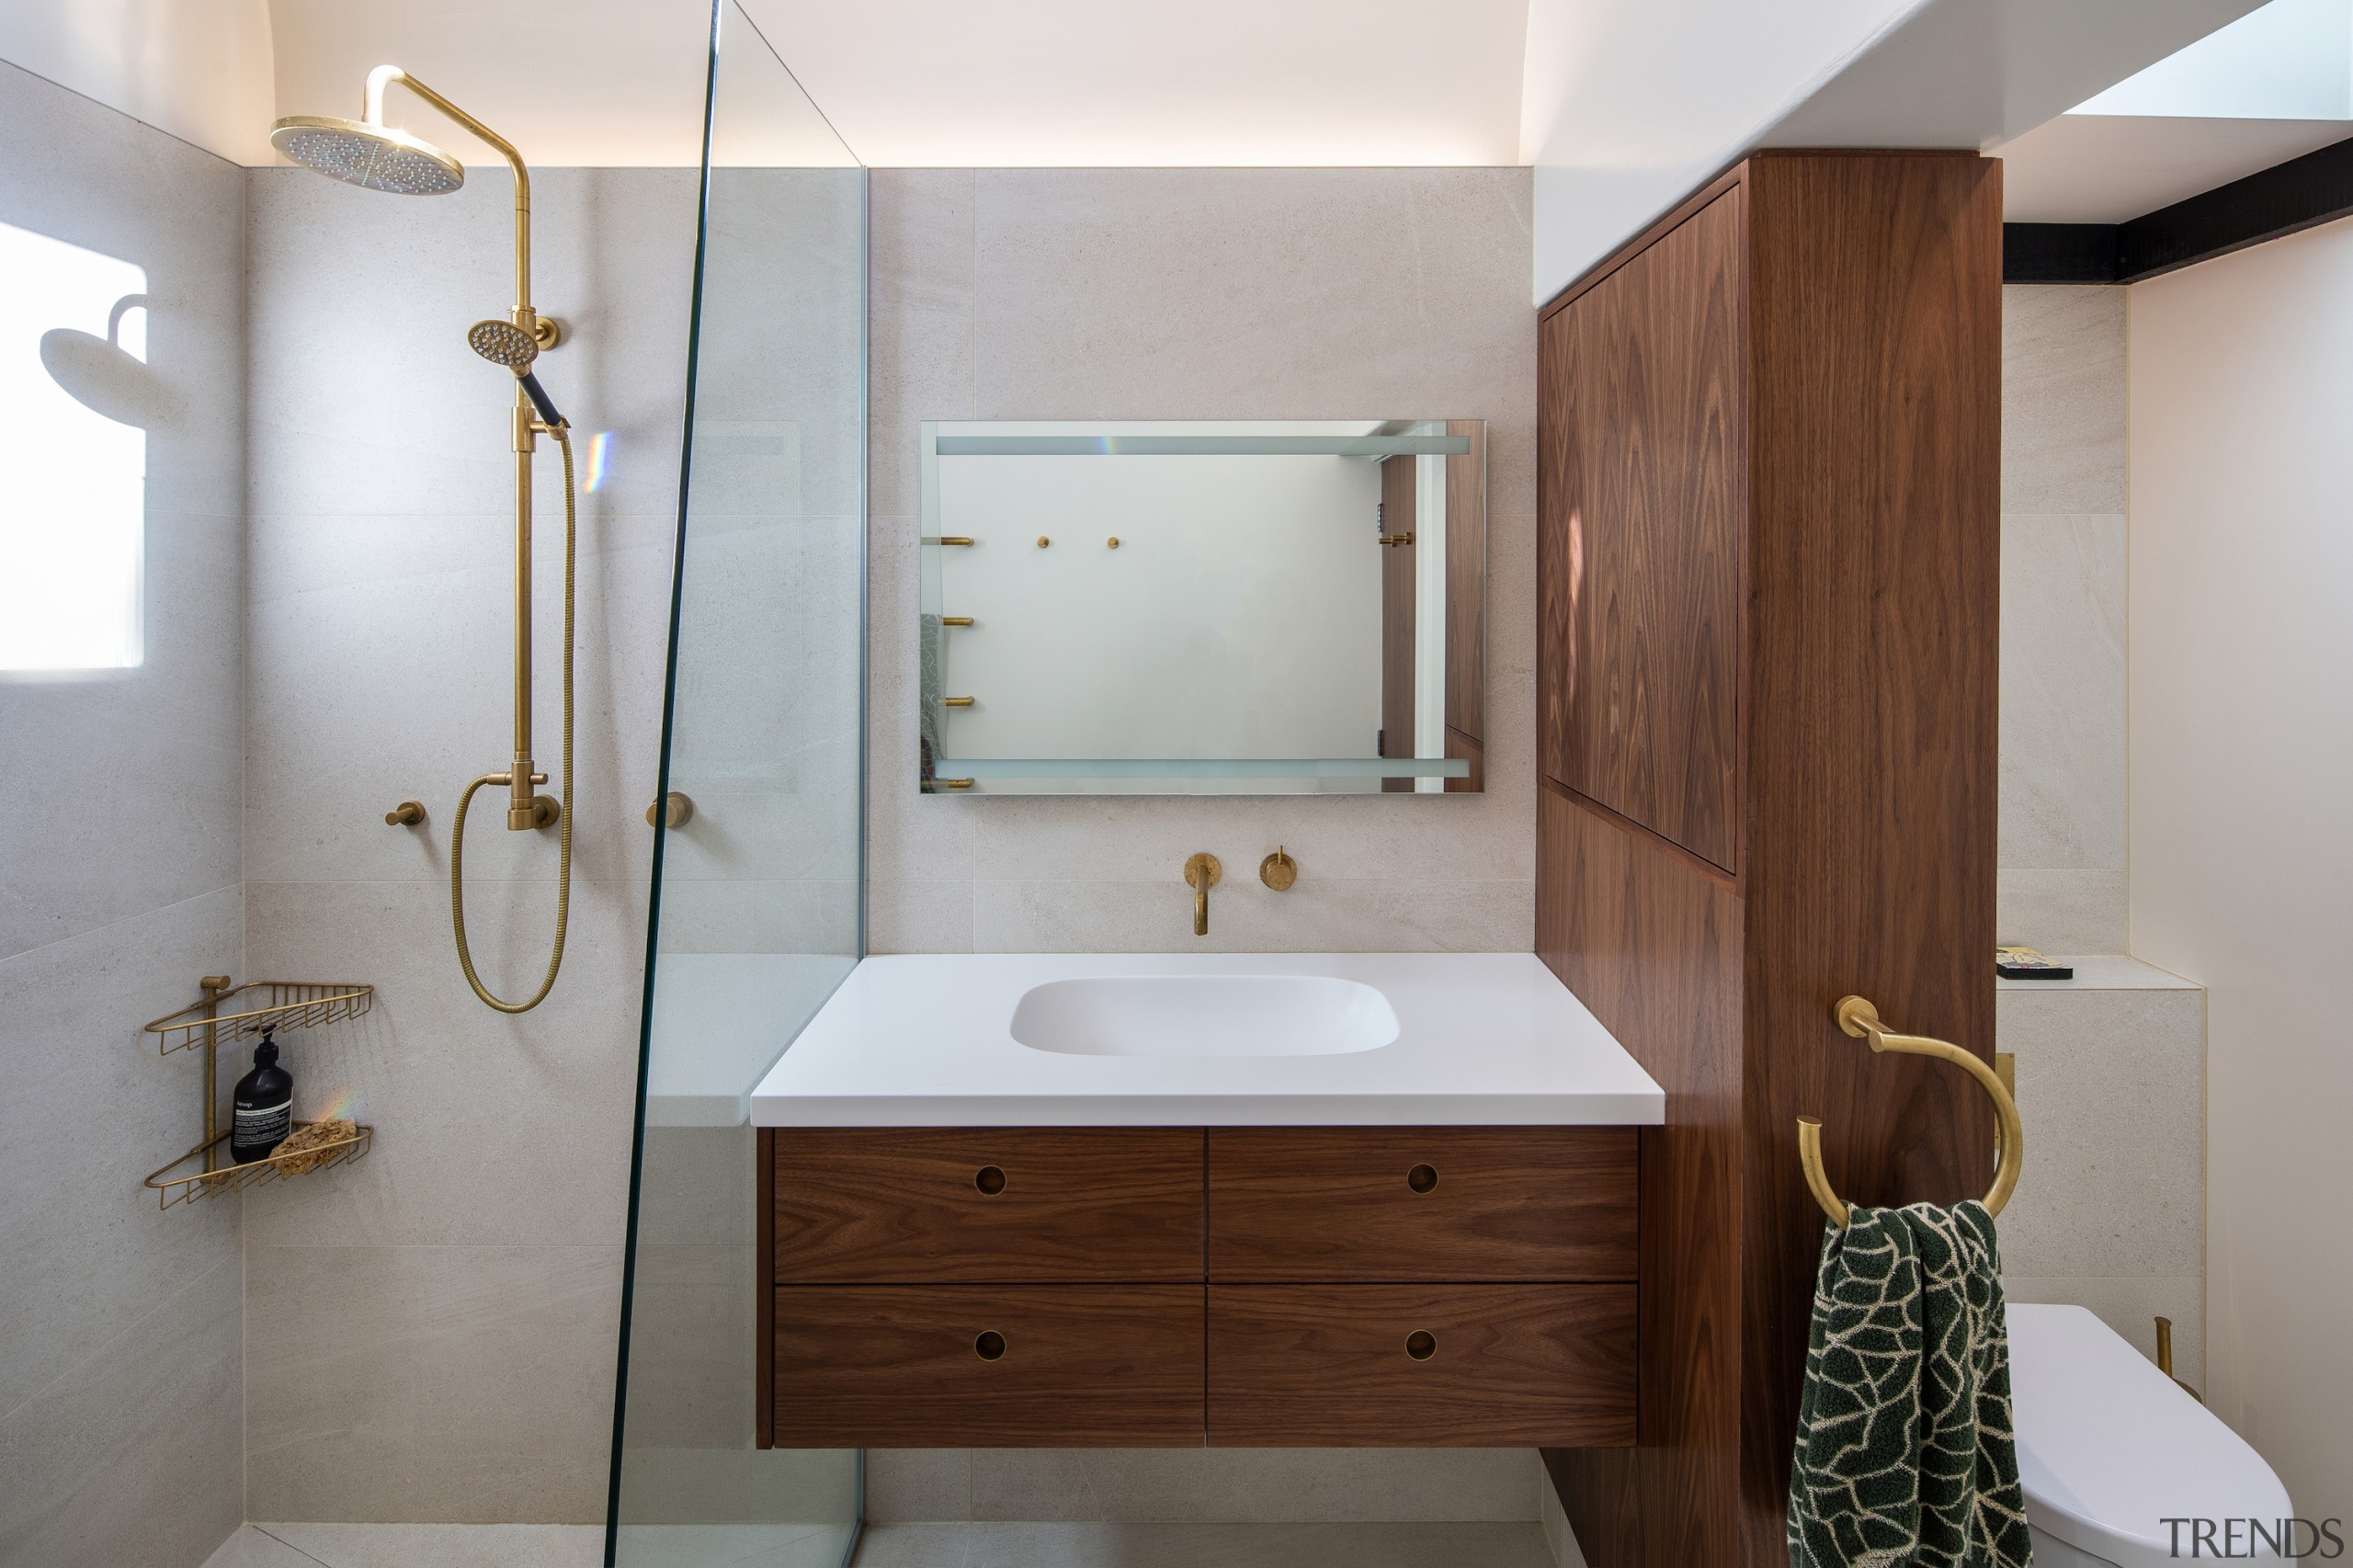 John Mills Architects – Highly Commended – 2019 architecture, bathroom, bathroom cabinet, building, ceiling, floor, furniture, hardwood, house, interior design, plumbing fixture, property, room, sink, tap, tile, gray